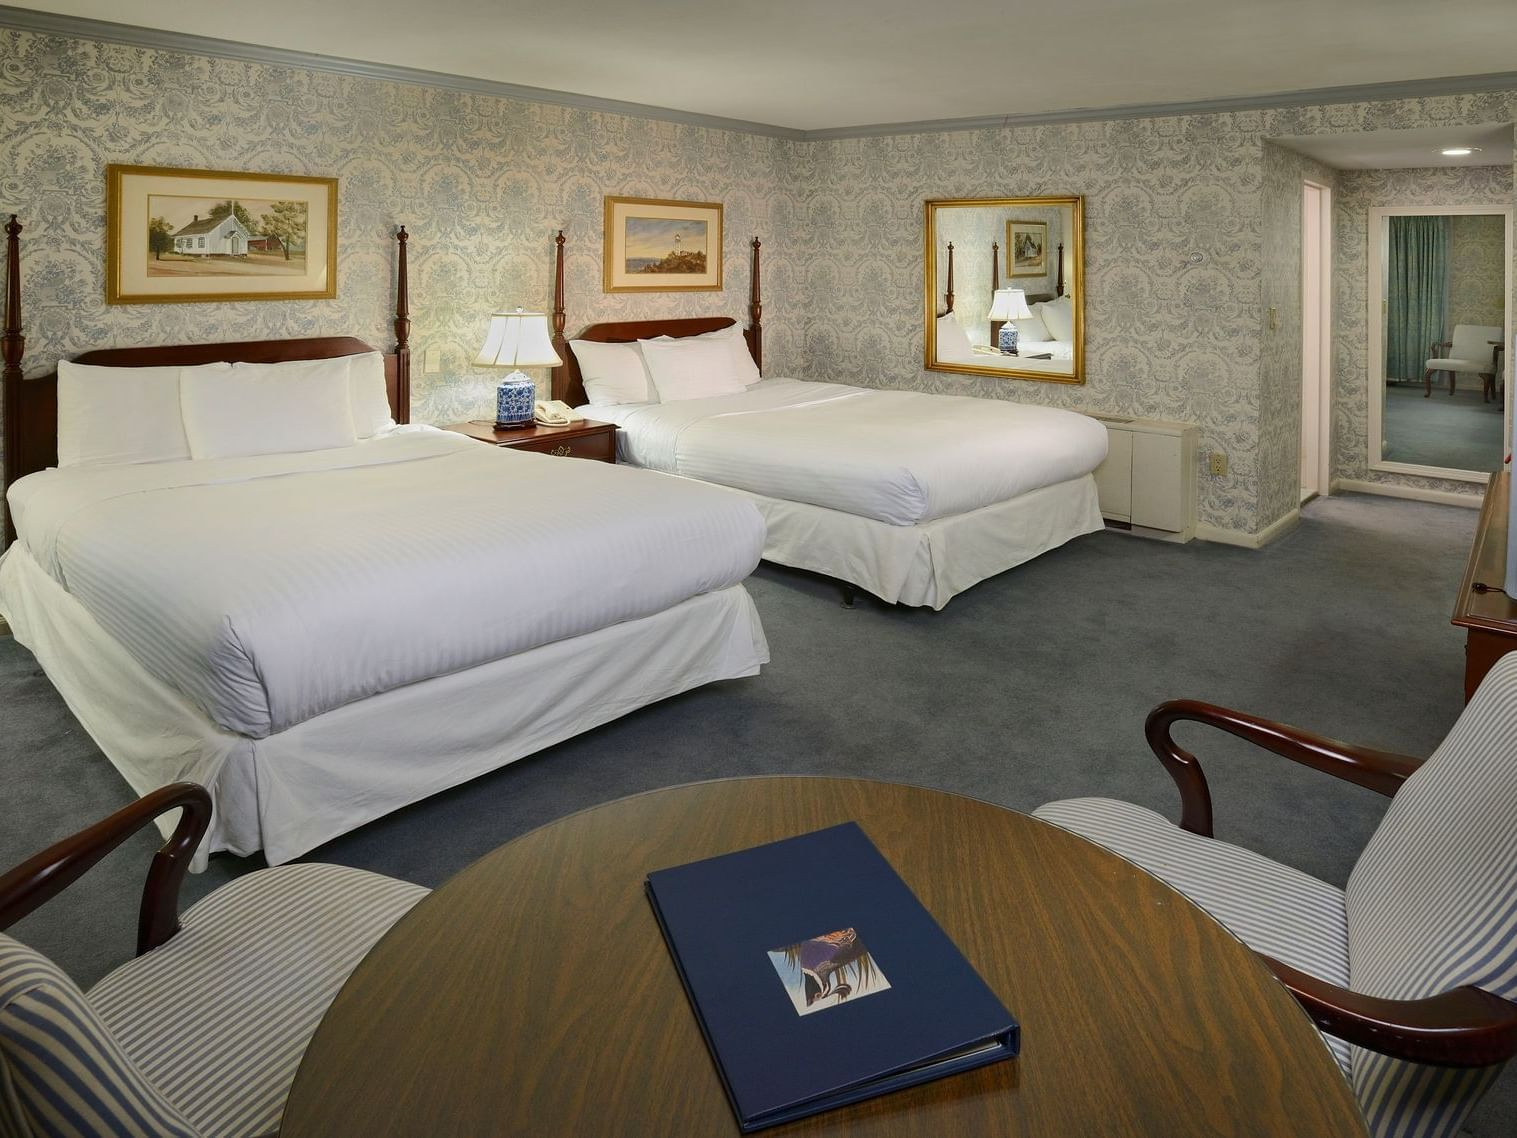 Twin beds in Two Double Standard at Avon Old Farms Hotel